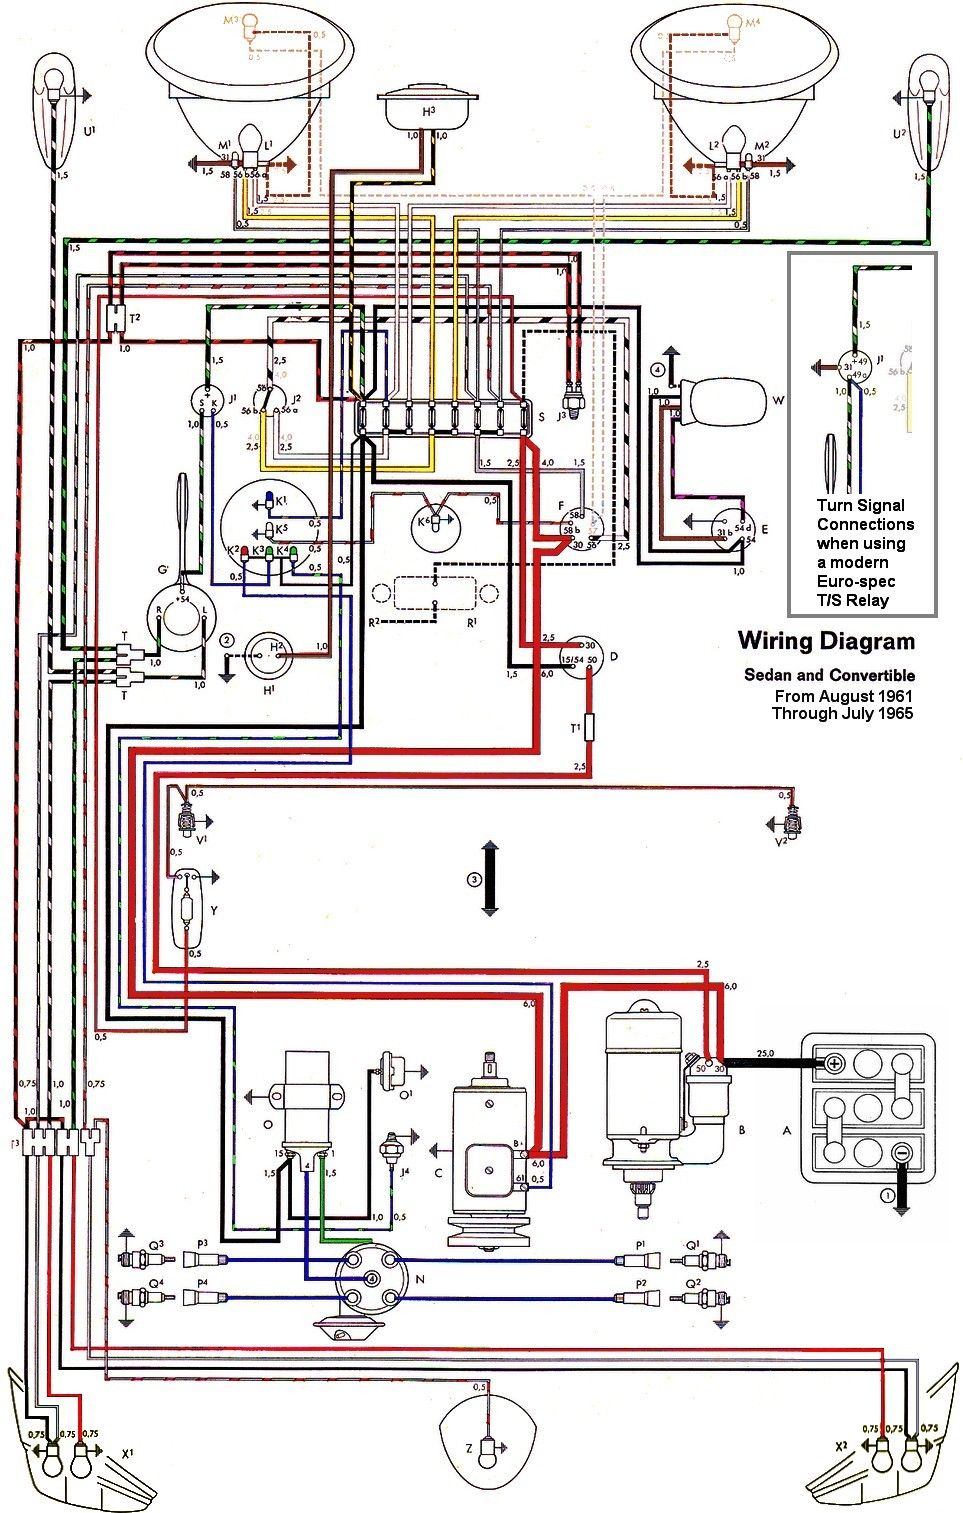 hight resolution of wiring diagram vw beetle sedan and convertible 1961 1965 vw wiring diagram vw beetle 1971 wiring